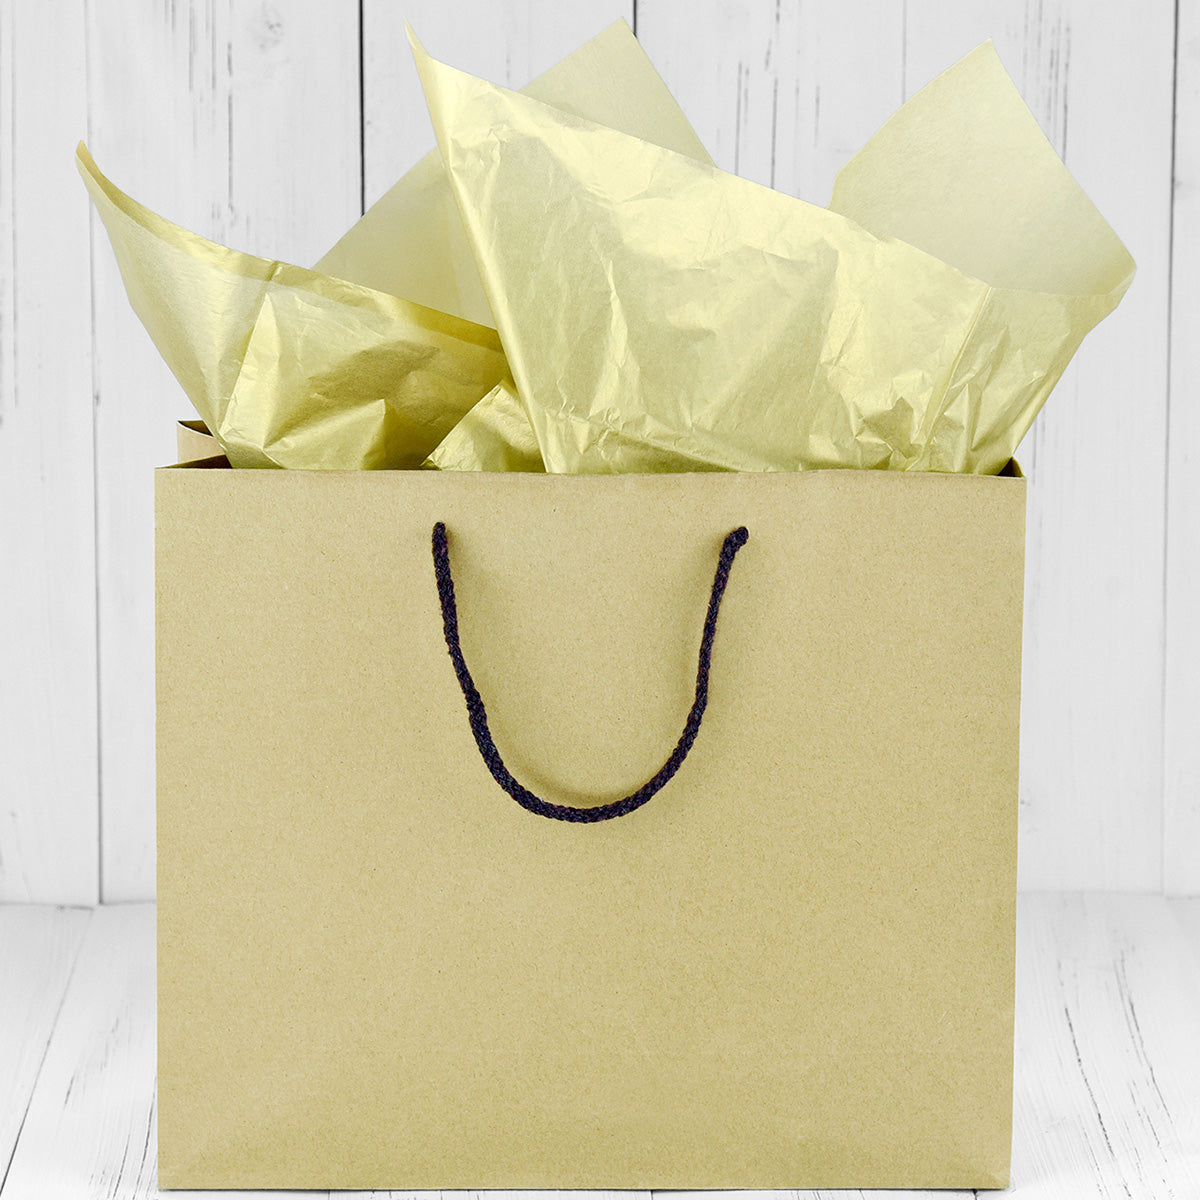 50 Sheets Gold Wrapping Tissue Paper